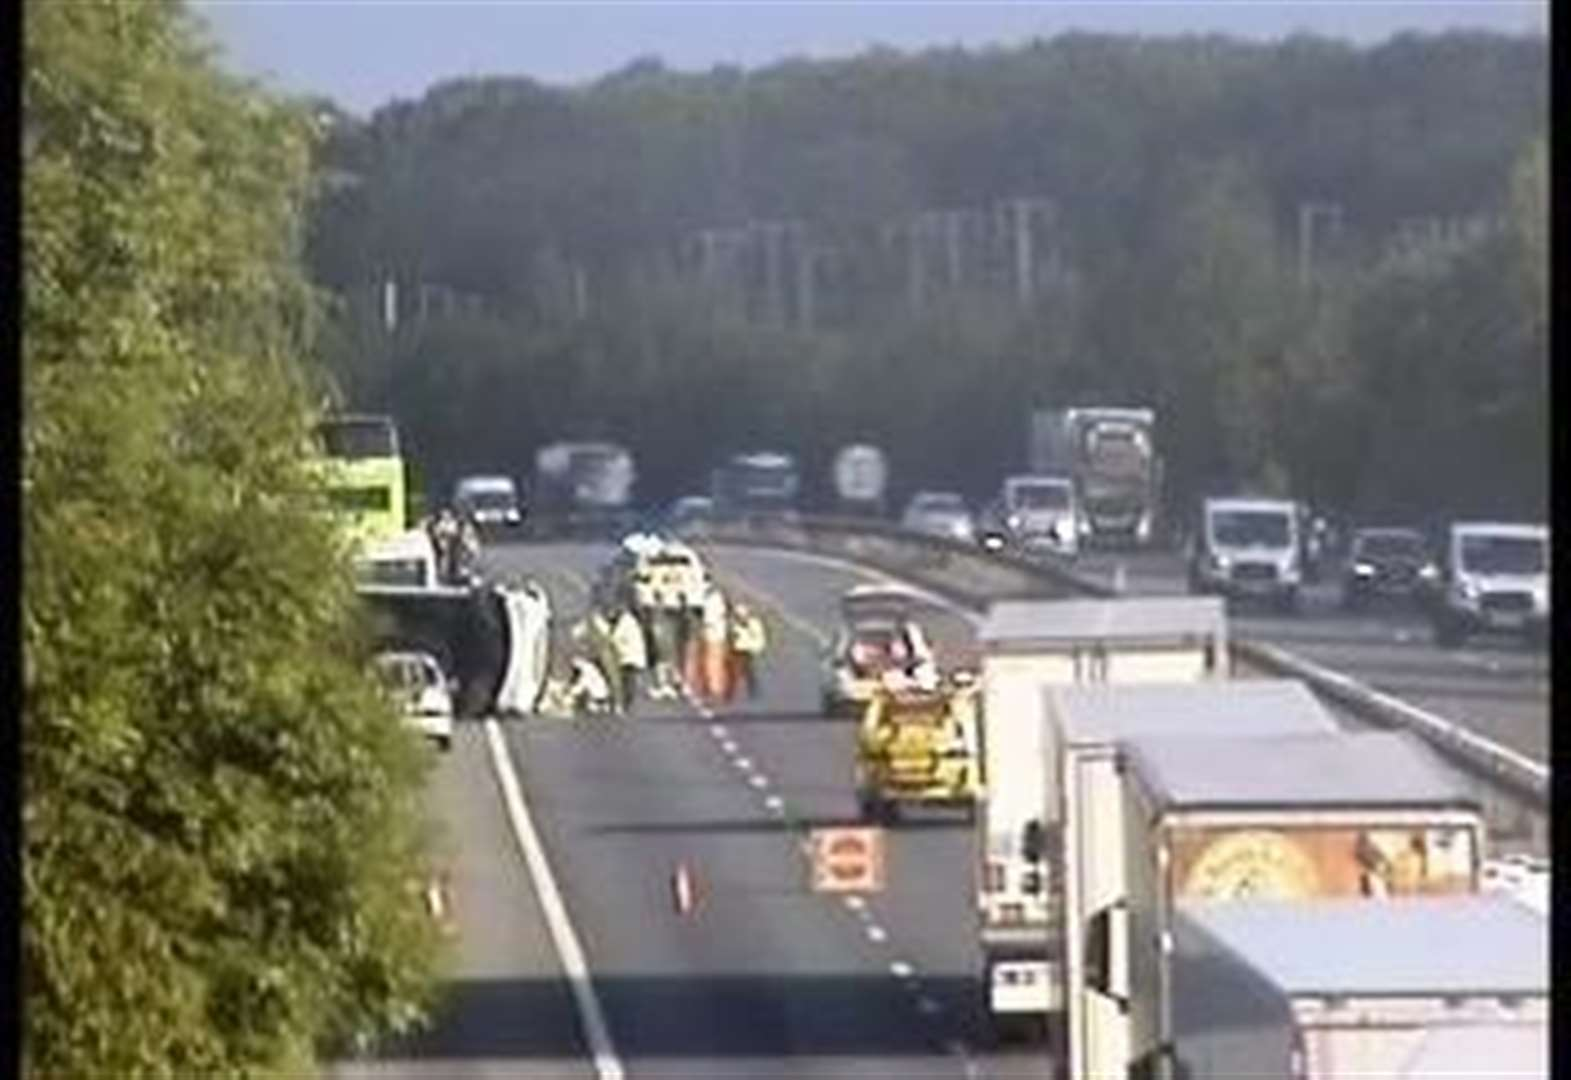 Van flip closes part of M20 after person injured